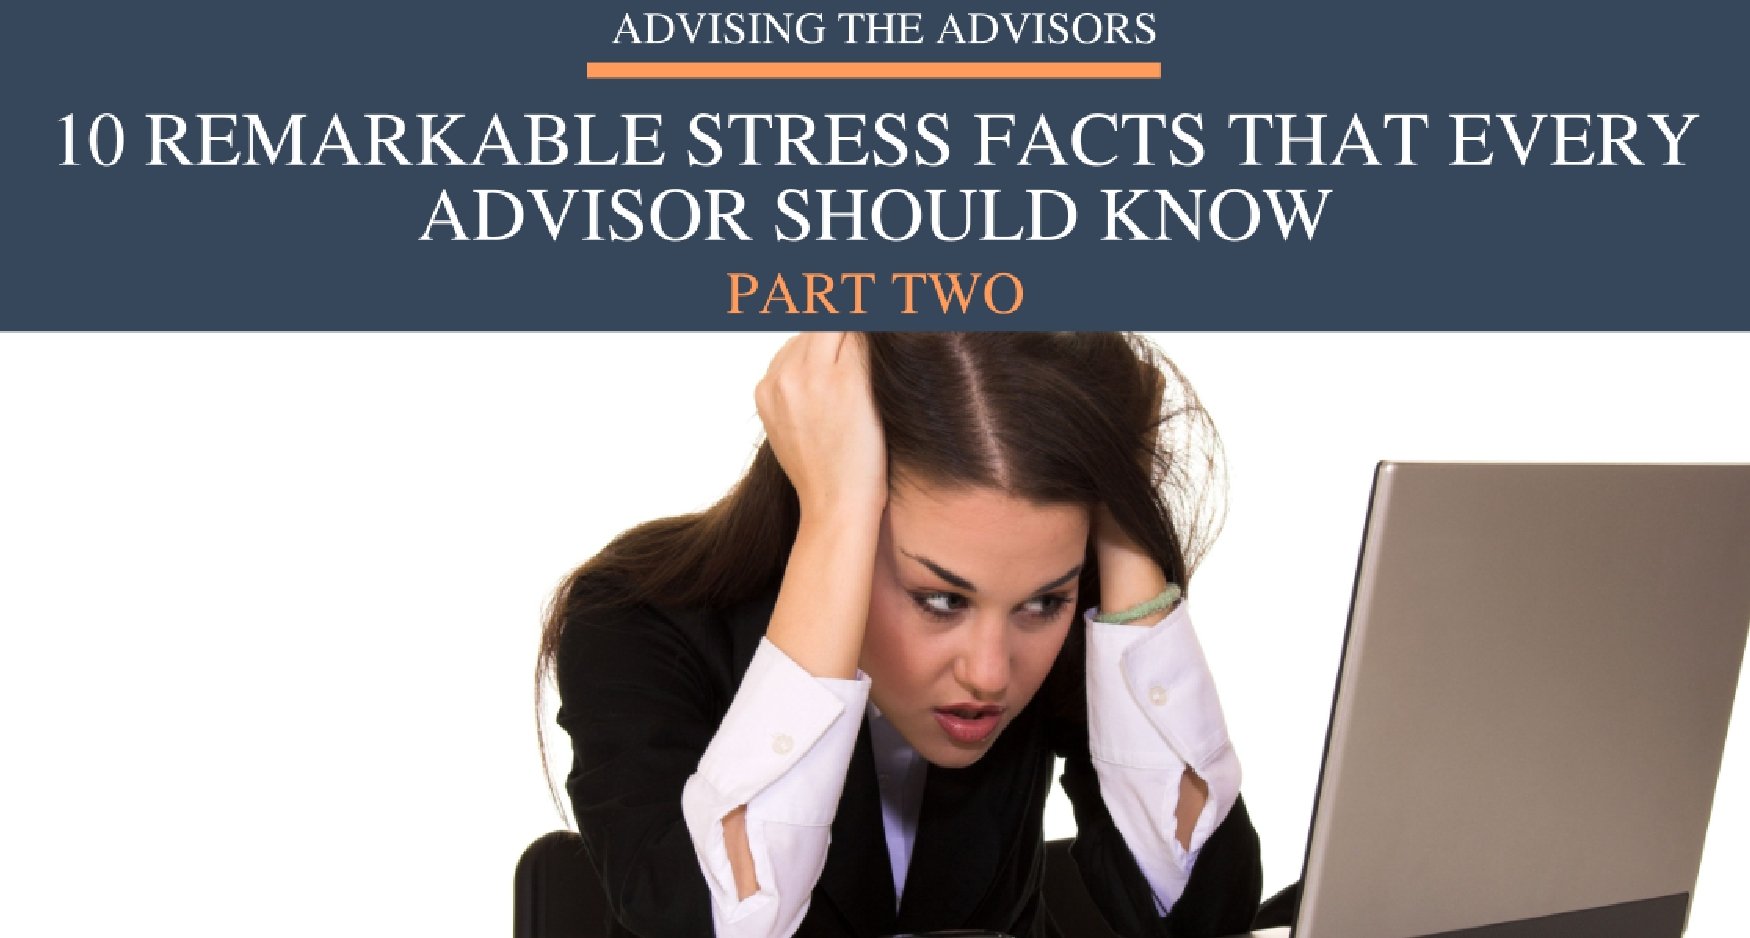 10 Remarkable Stress Facts that Every Advisor Should Know-Part 2.